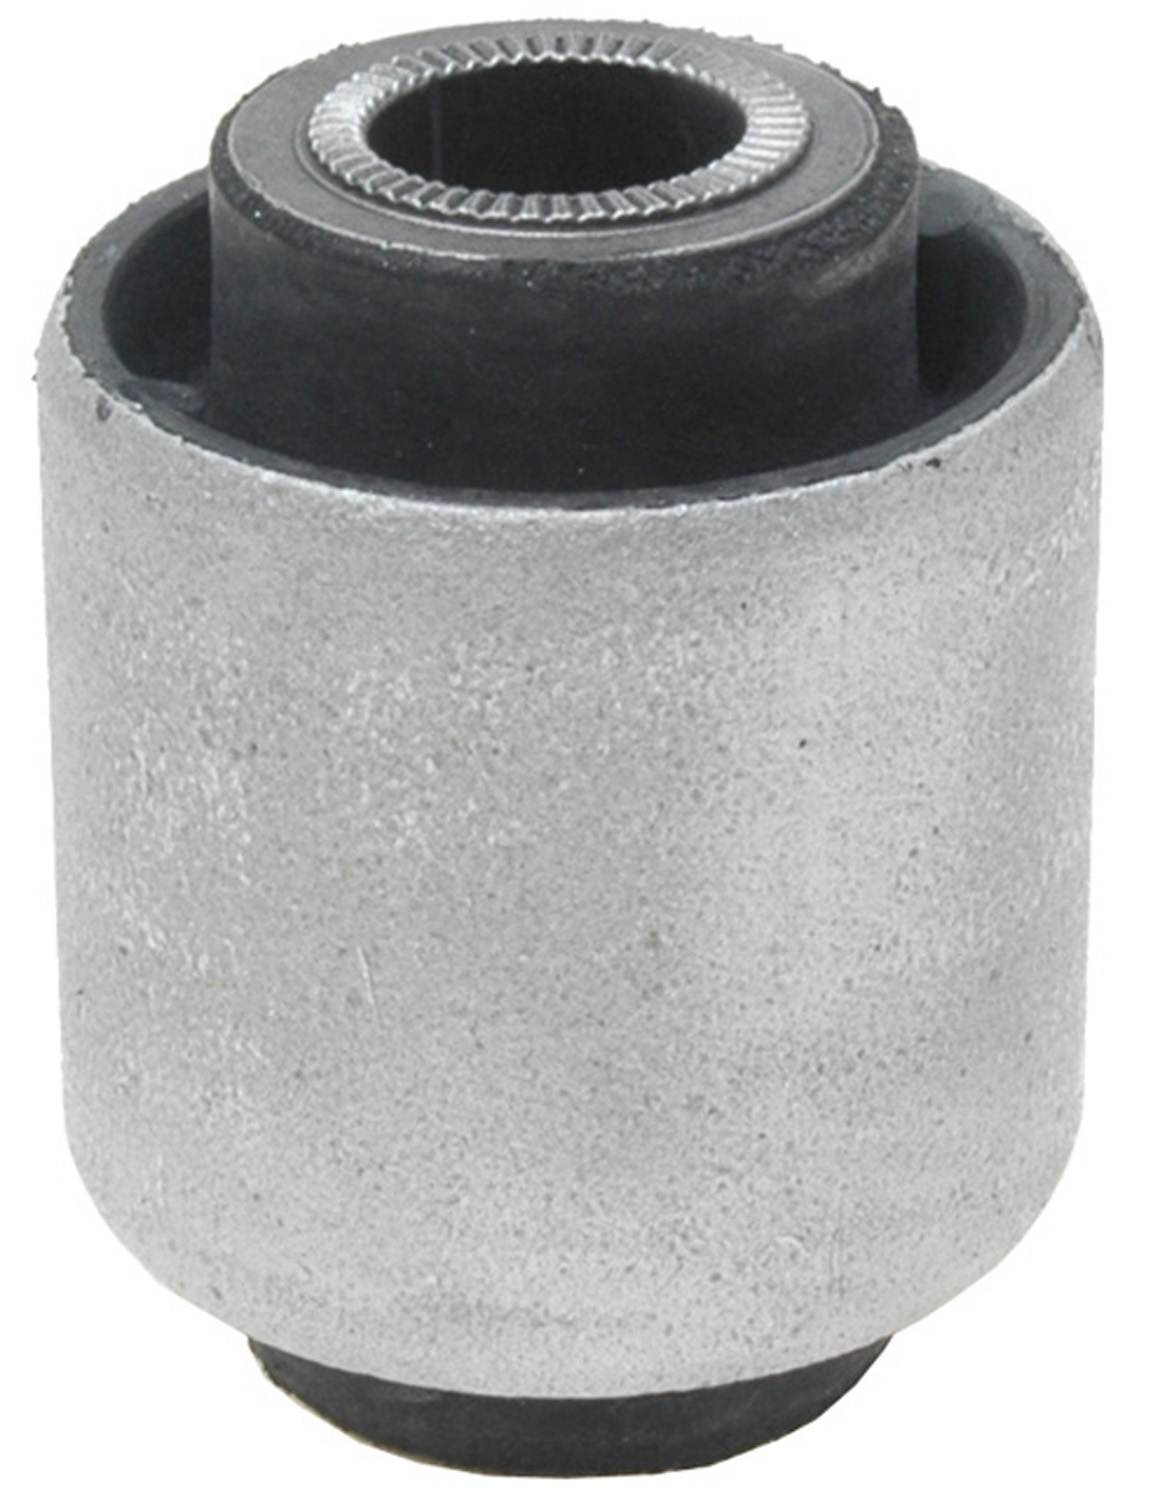 ACDELCO PROFESSIONAL - Suspension Knuckle Bushing - DCC 45G31015